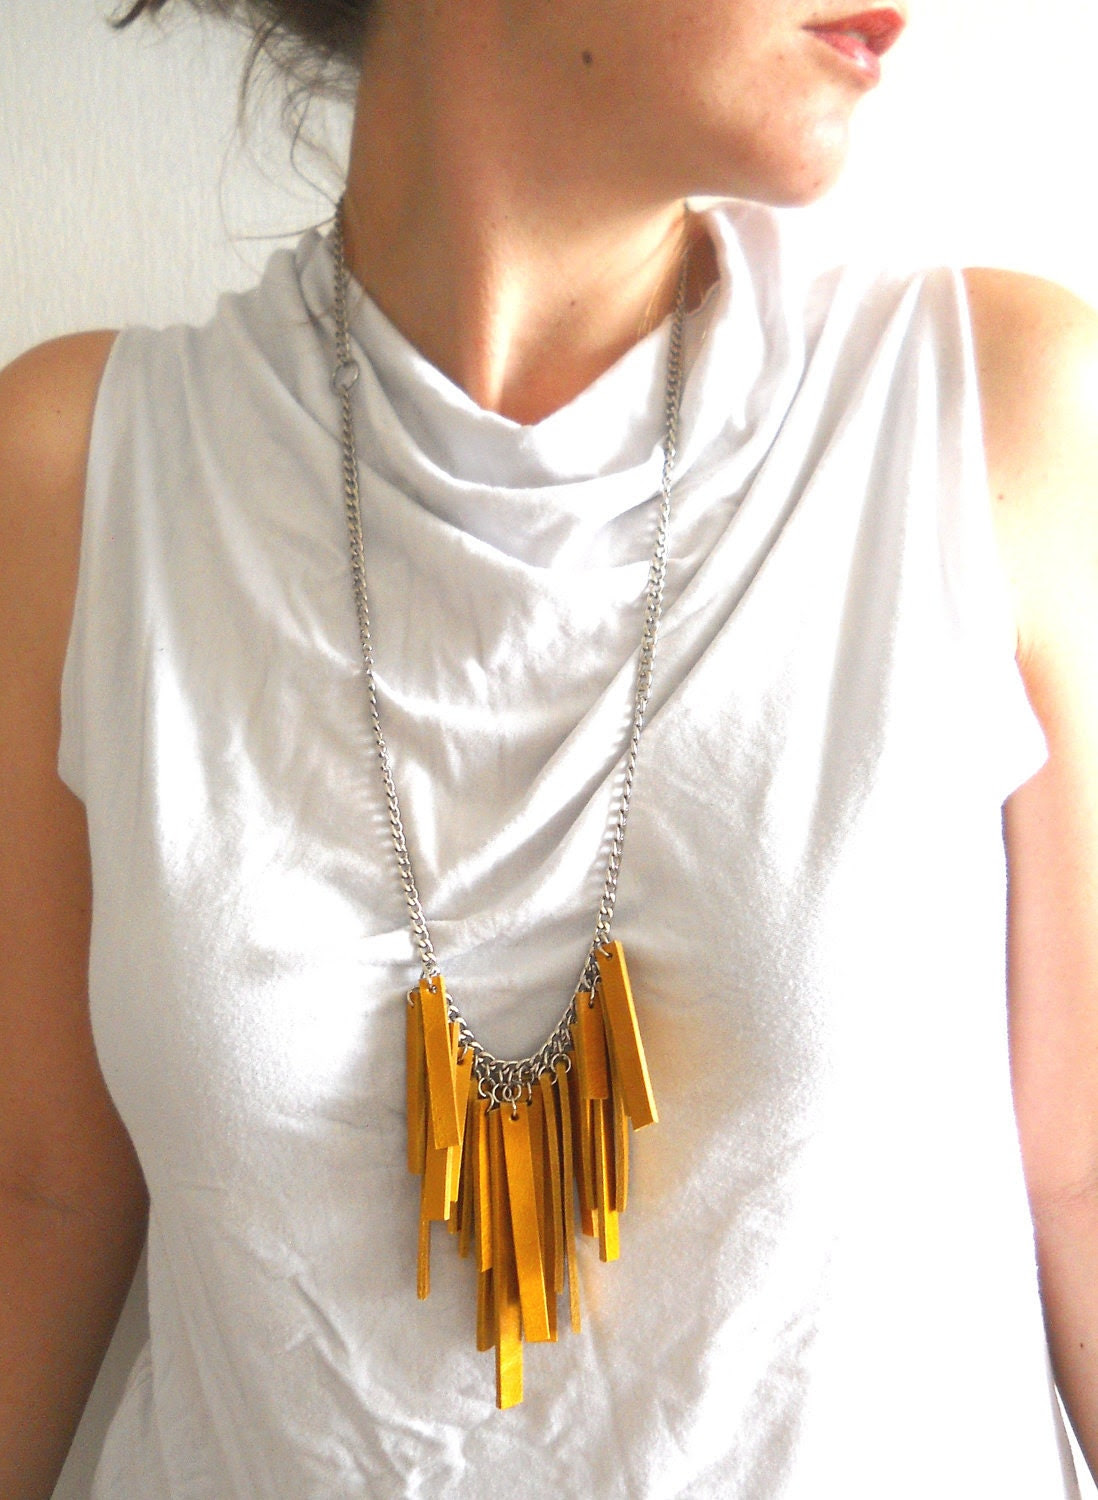 leather artist necklace